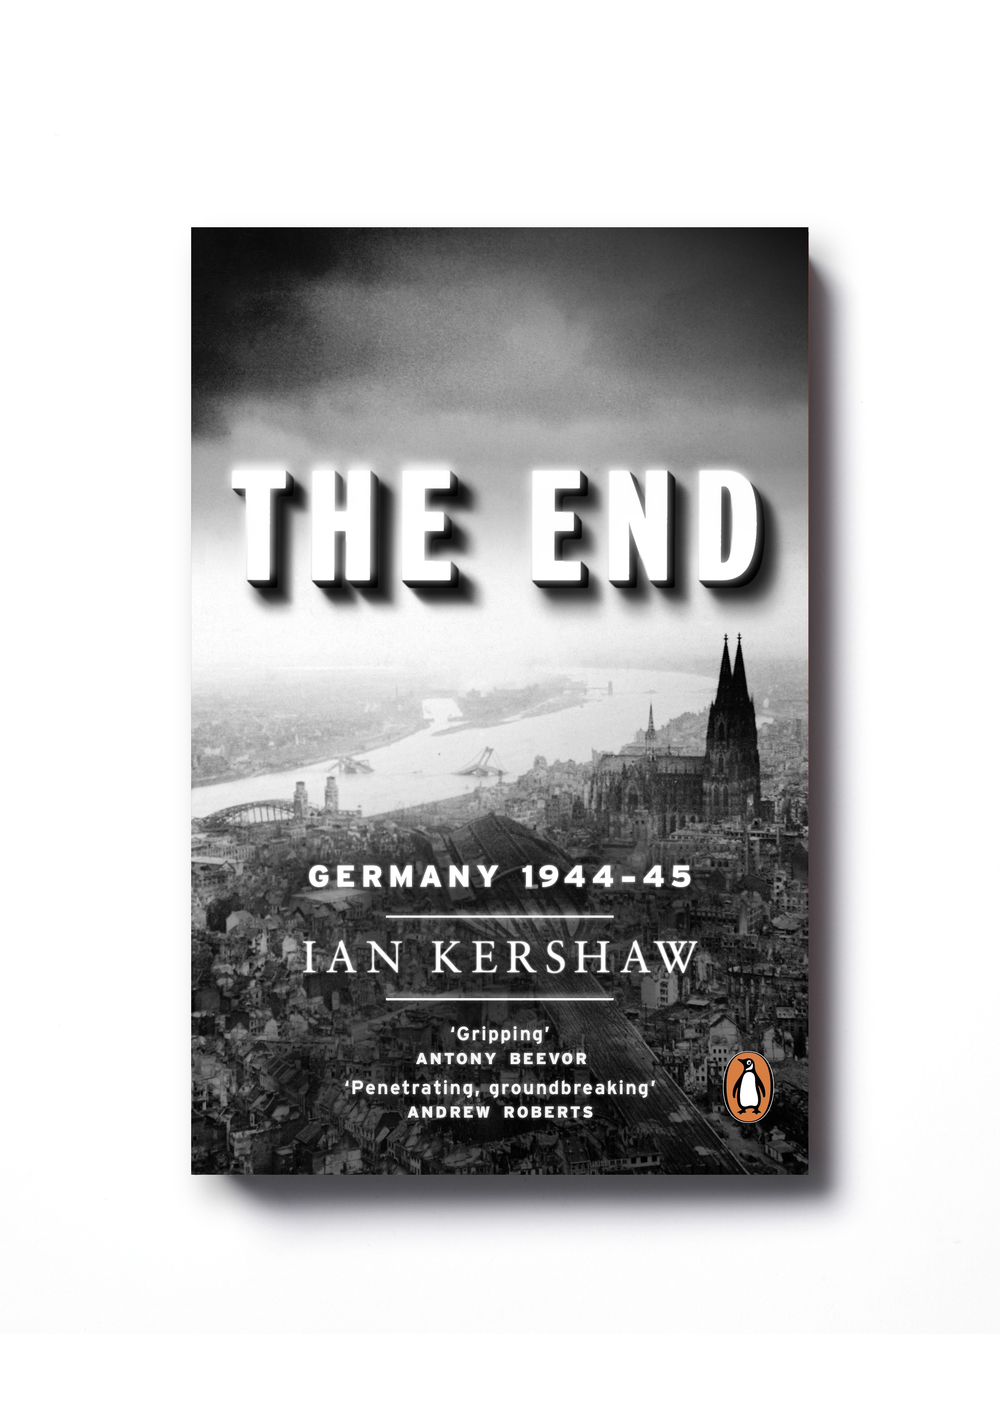 The End by Ian Kershaw - Design: Jim Stoddart